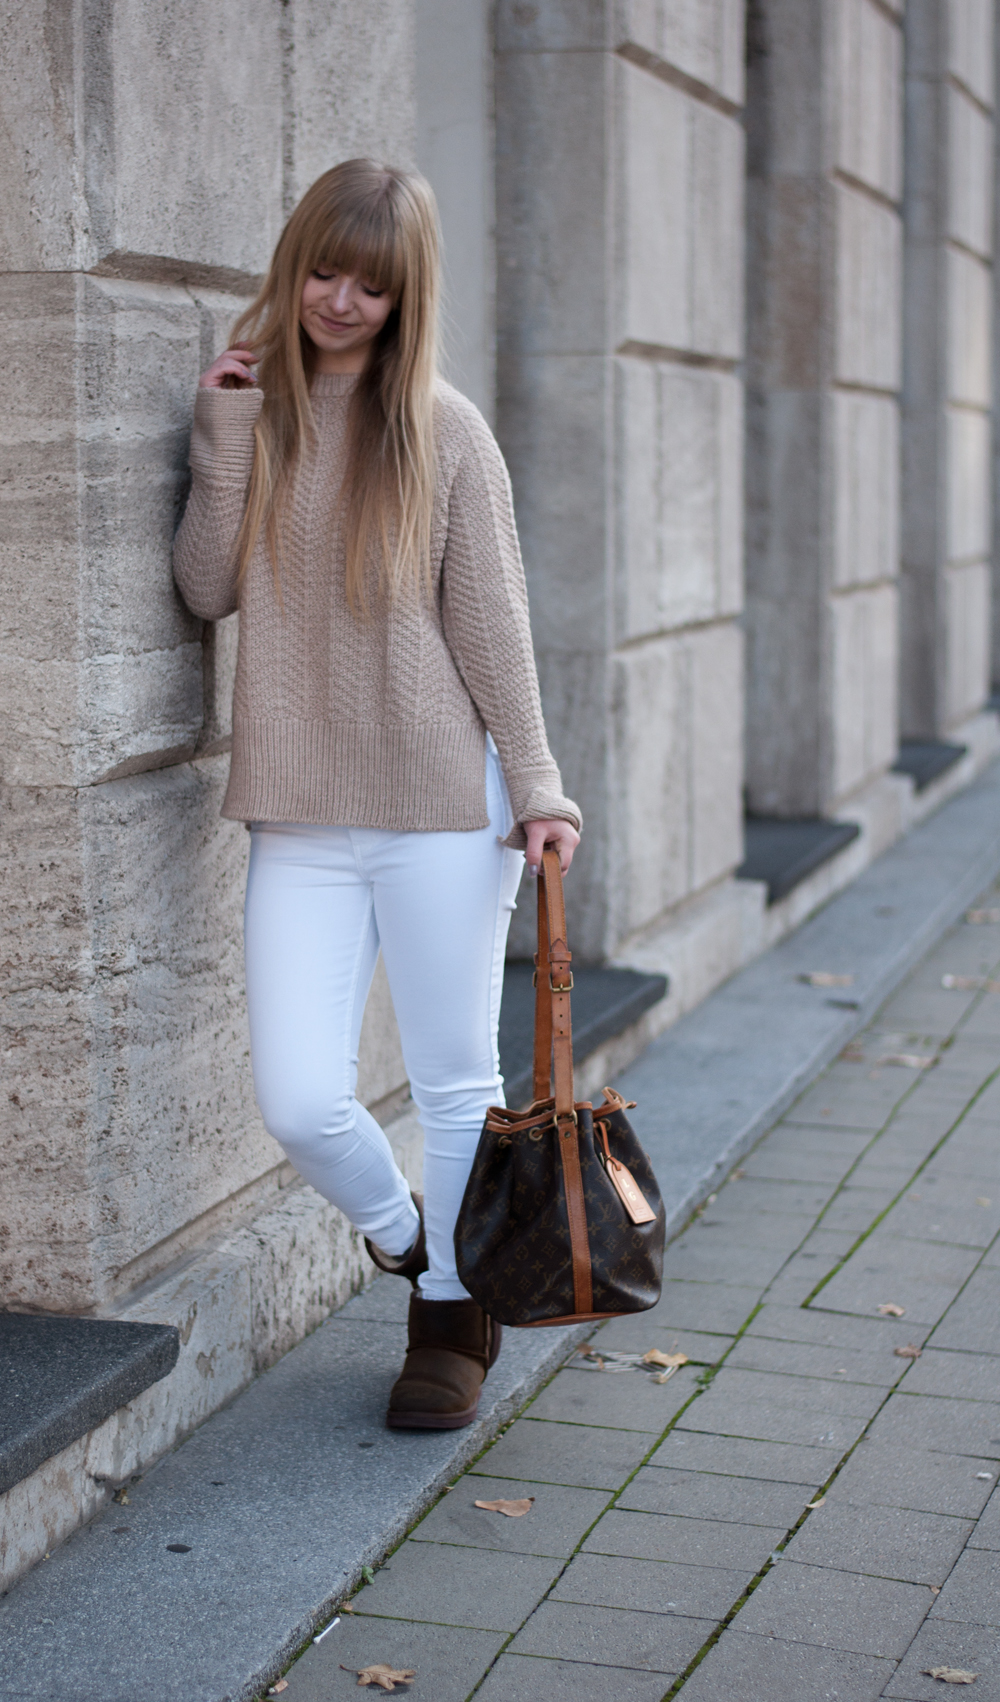 winter-outfit-cozy-look-fashionblogger-modeblog-knitwear-ugg-boots-camel-beige-louisvuitton-sac-noe-ootd-duisburg-nrw-1